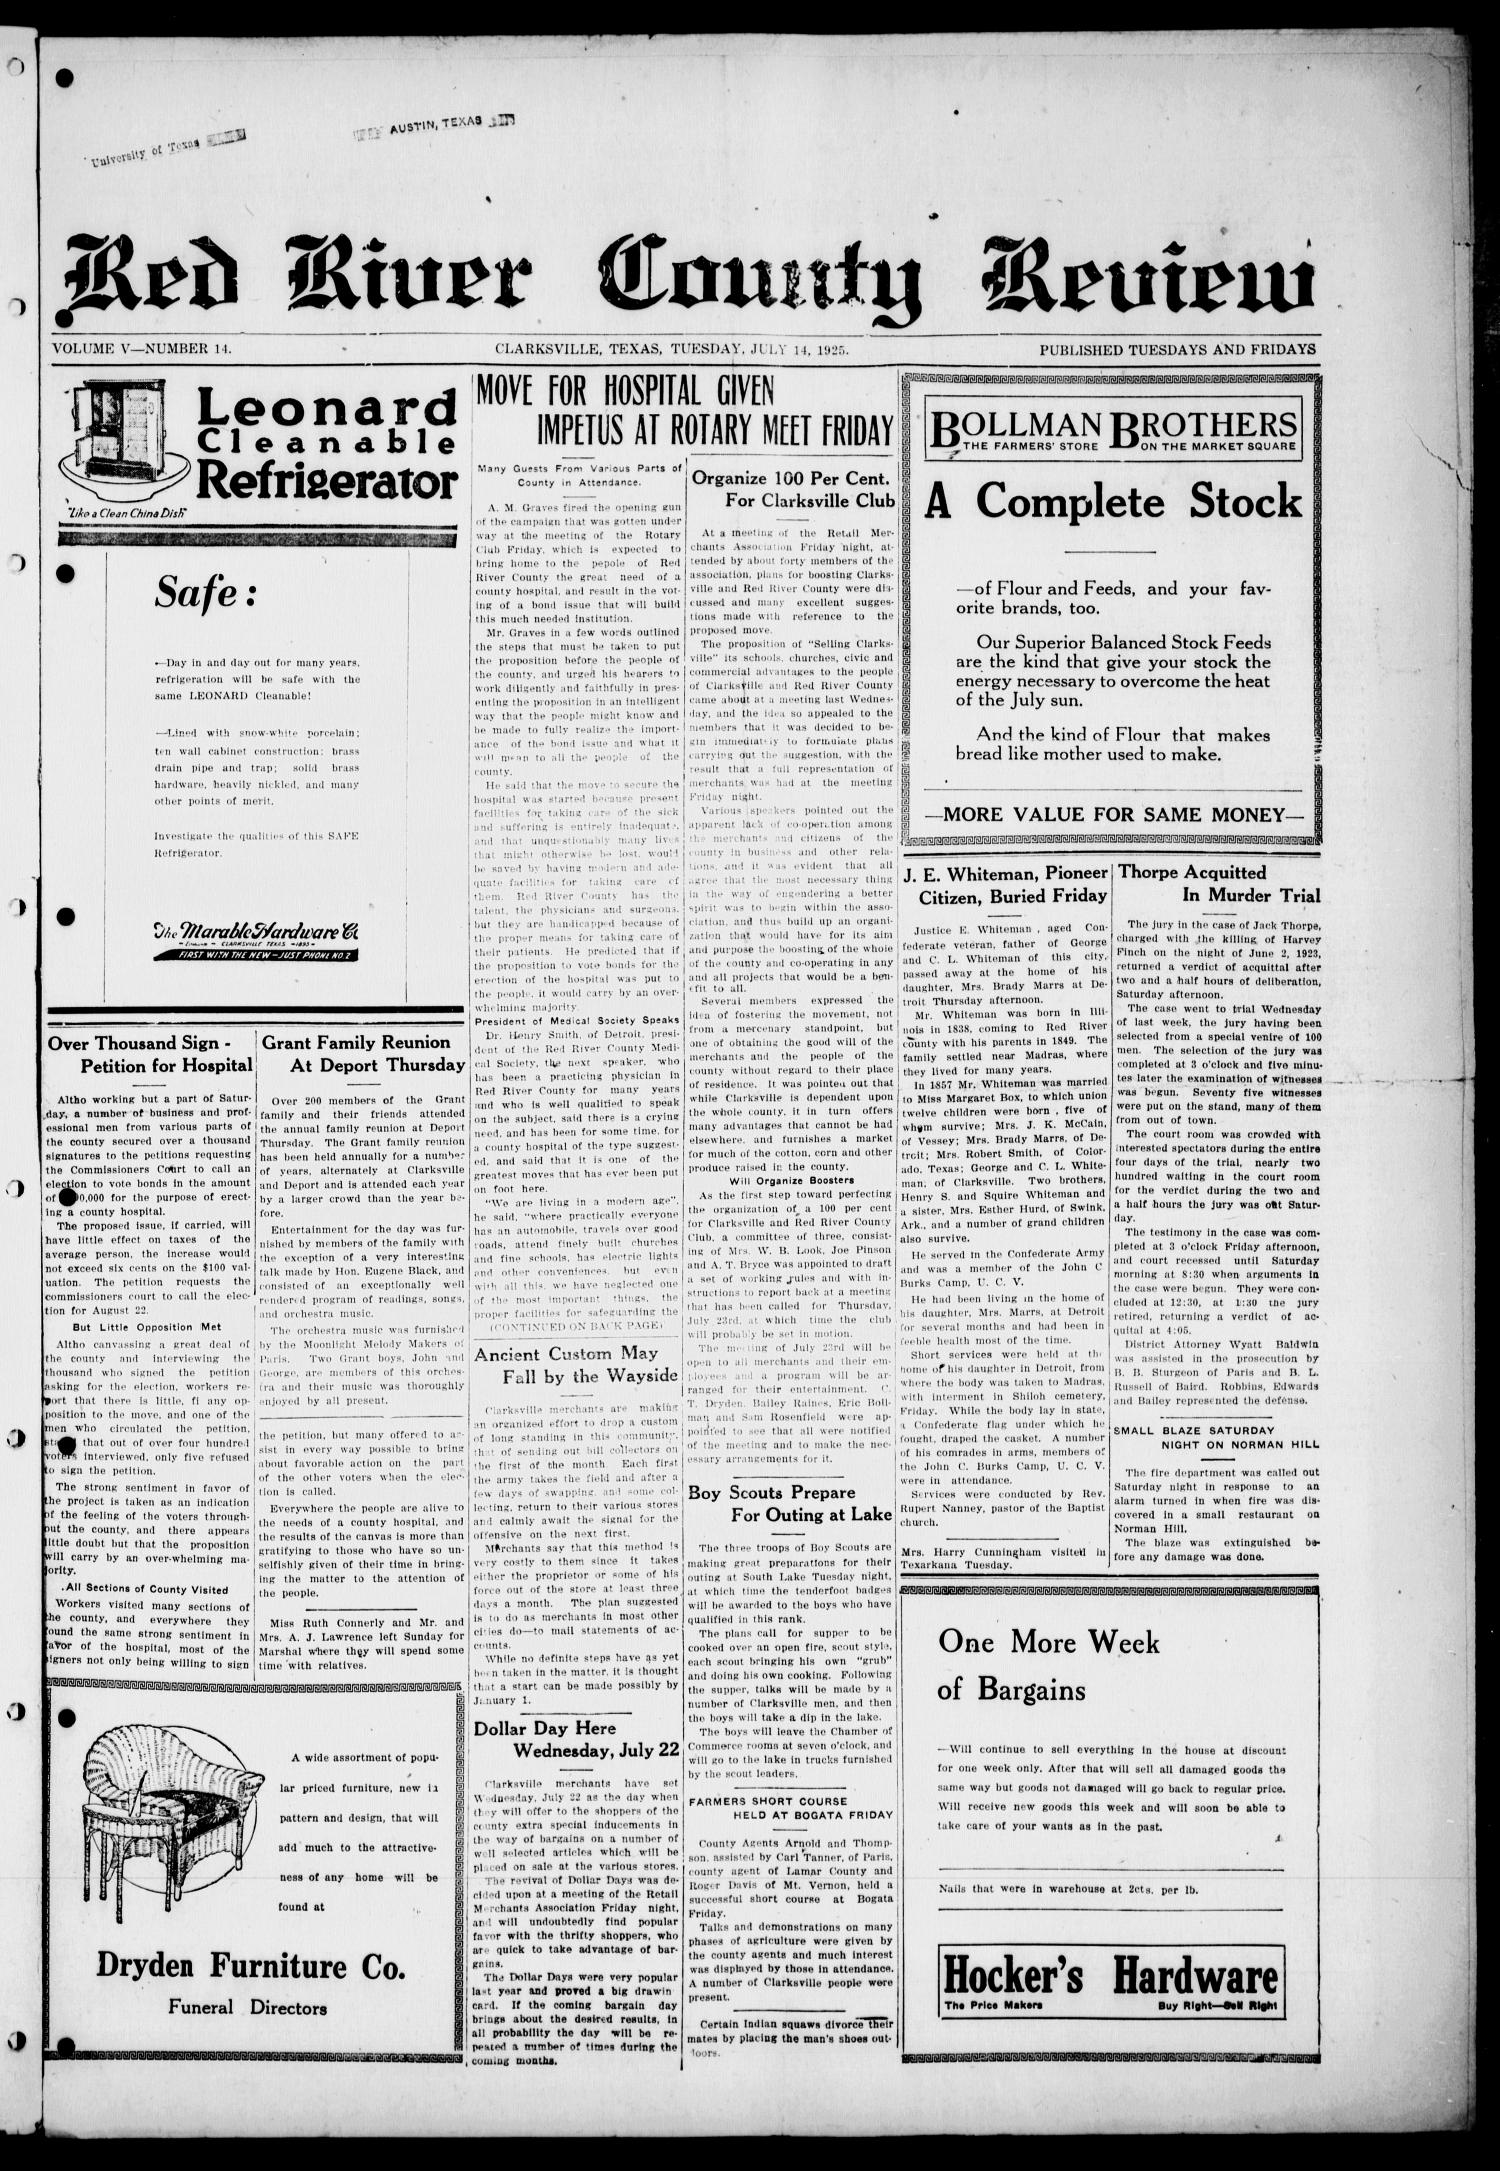 Red River County Review (Clarksville, Tex.), Vol. 5, No. 14, Ed. 1 Tuesday, July 14, 1925                                                                                                      [Sequence #]: 1 of 4